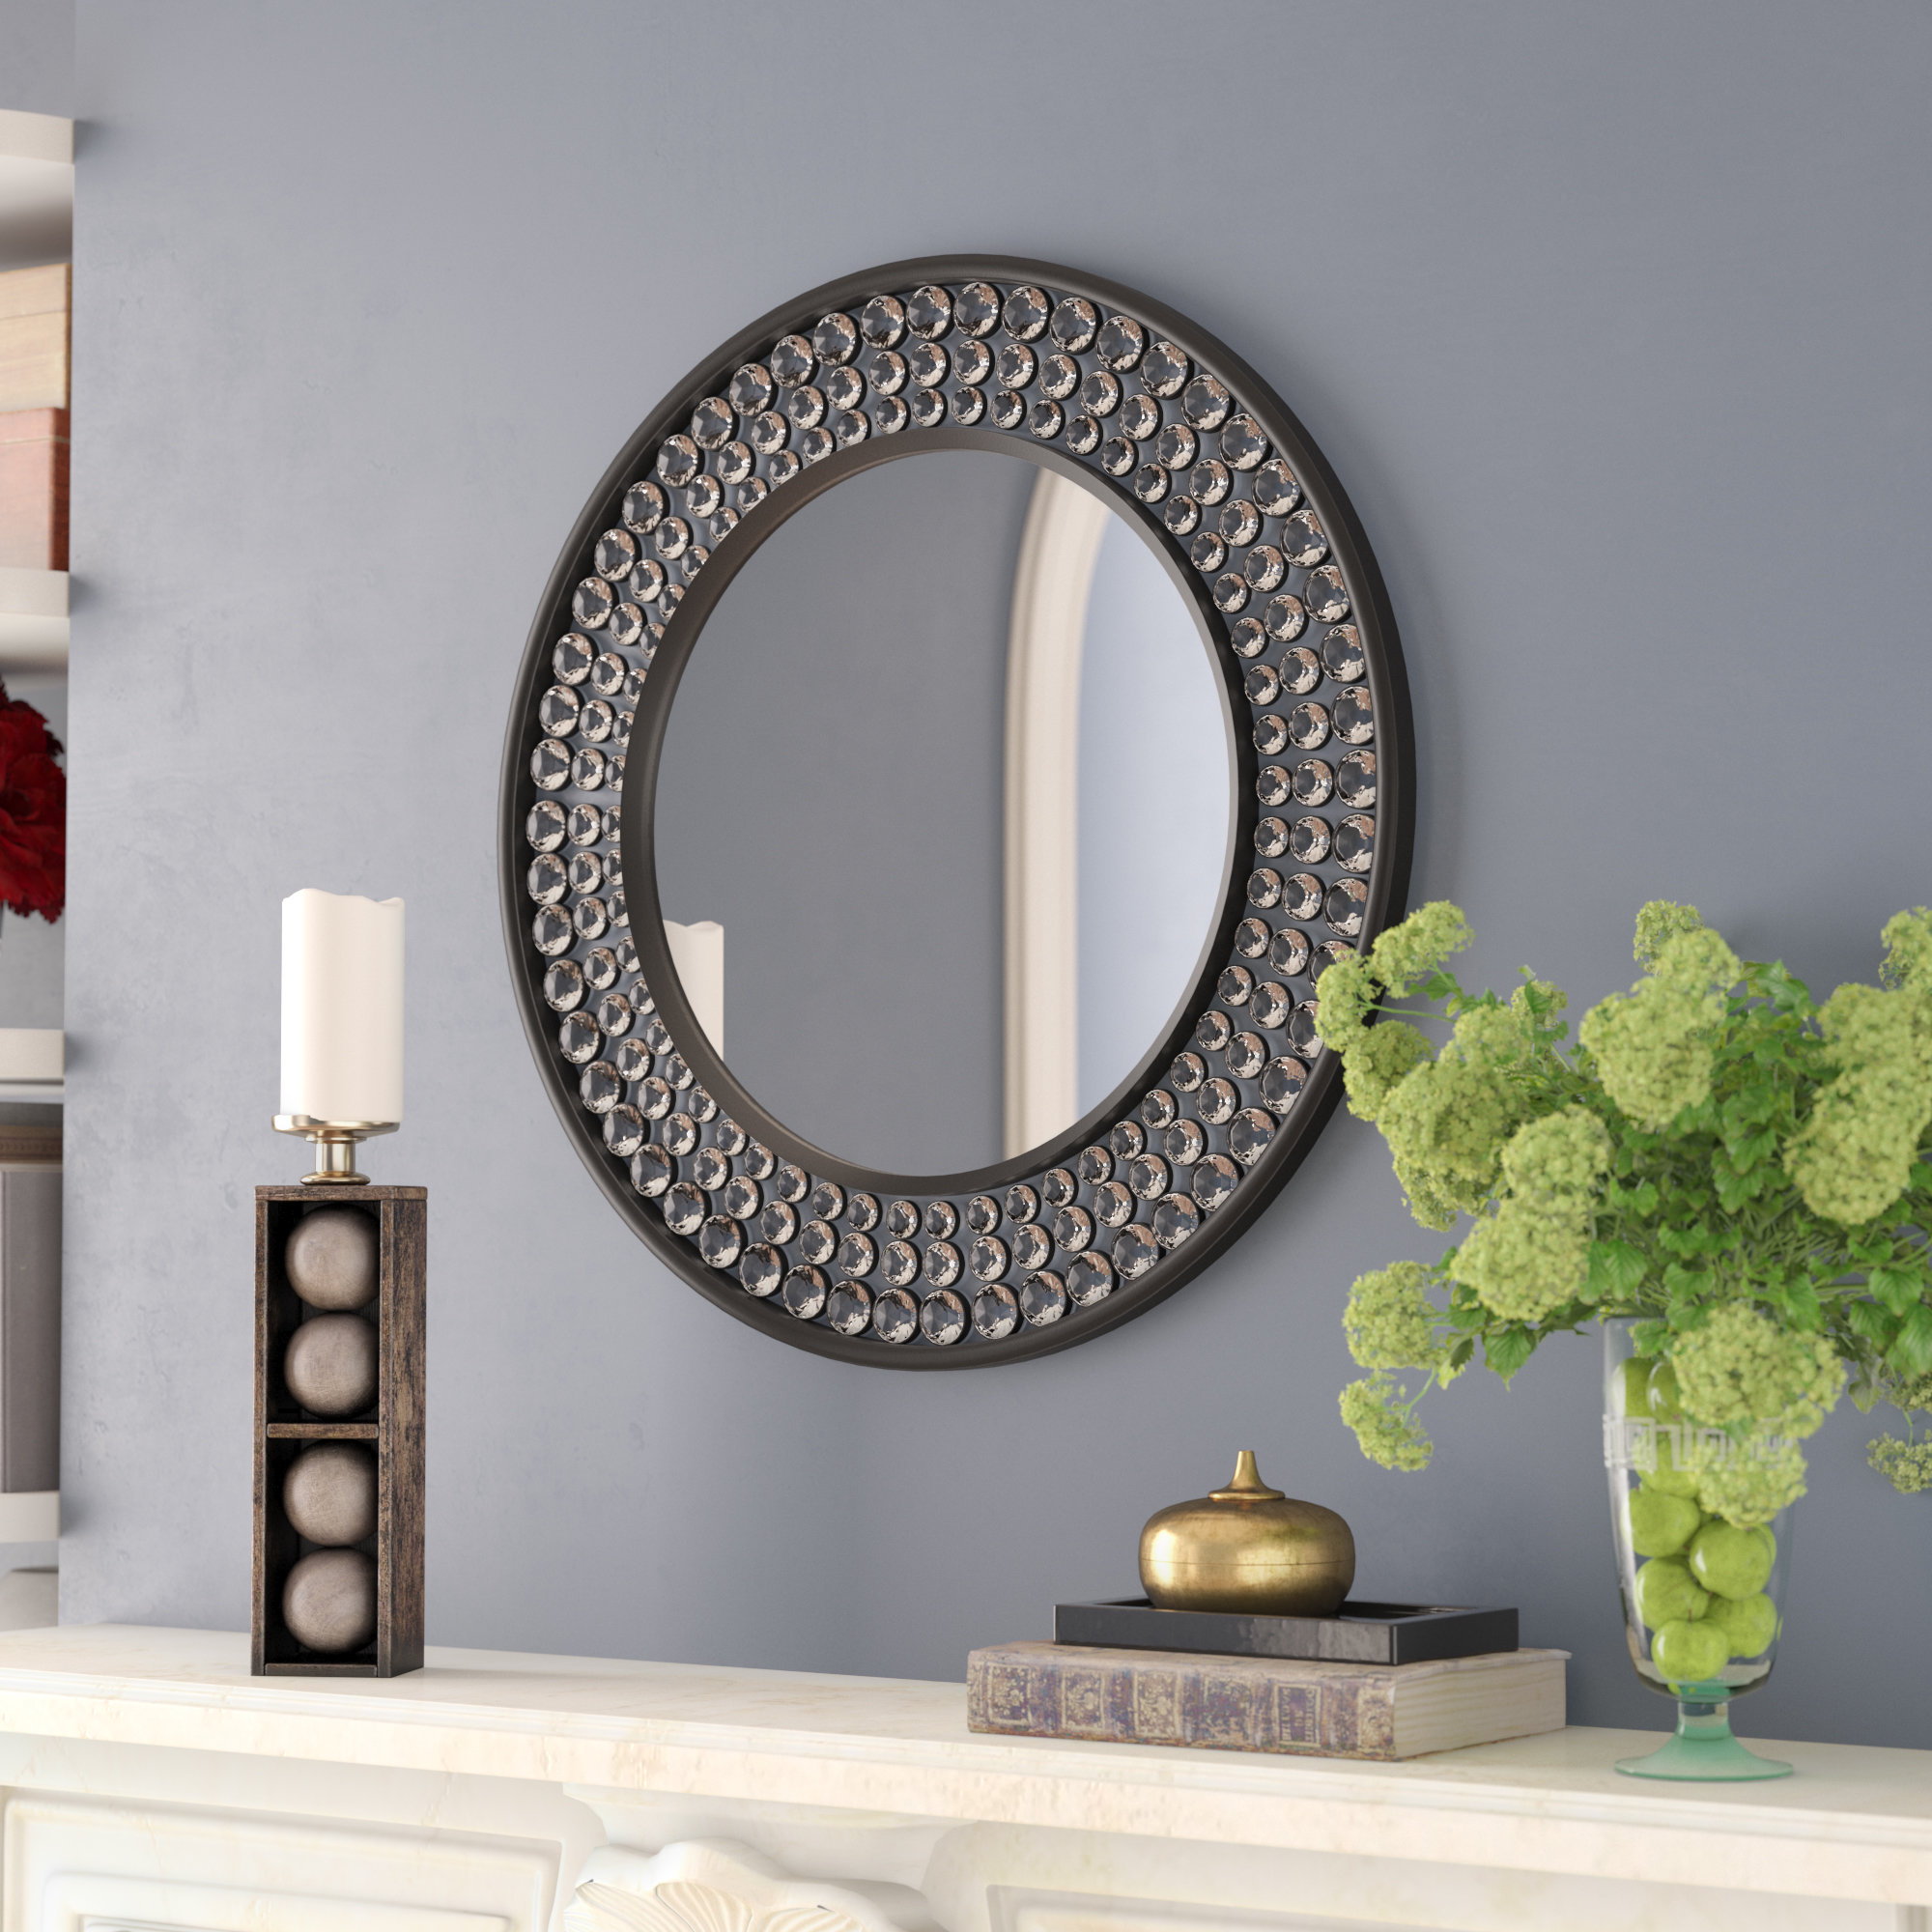 Valerian Jeweled Round Wall Mirror Throughout Point Reyes Molten Round Wall Mirrors (View 6 of 20)